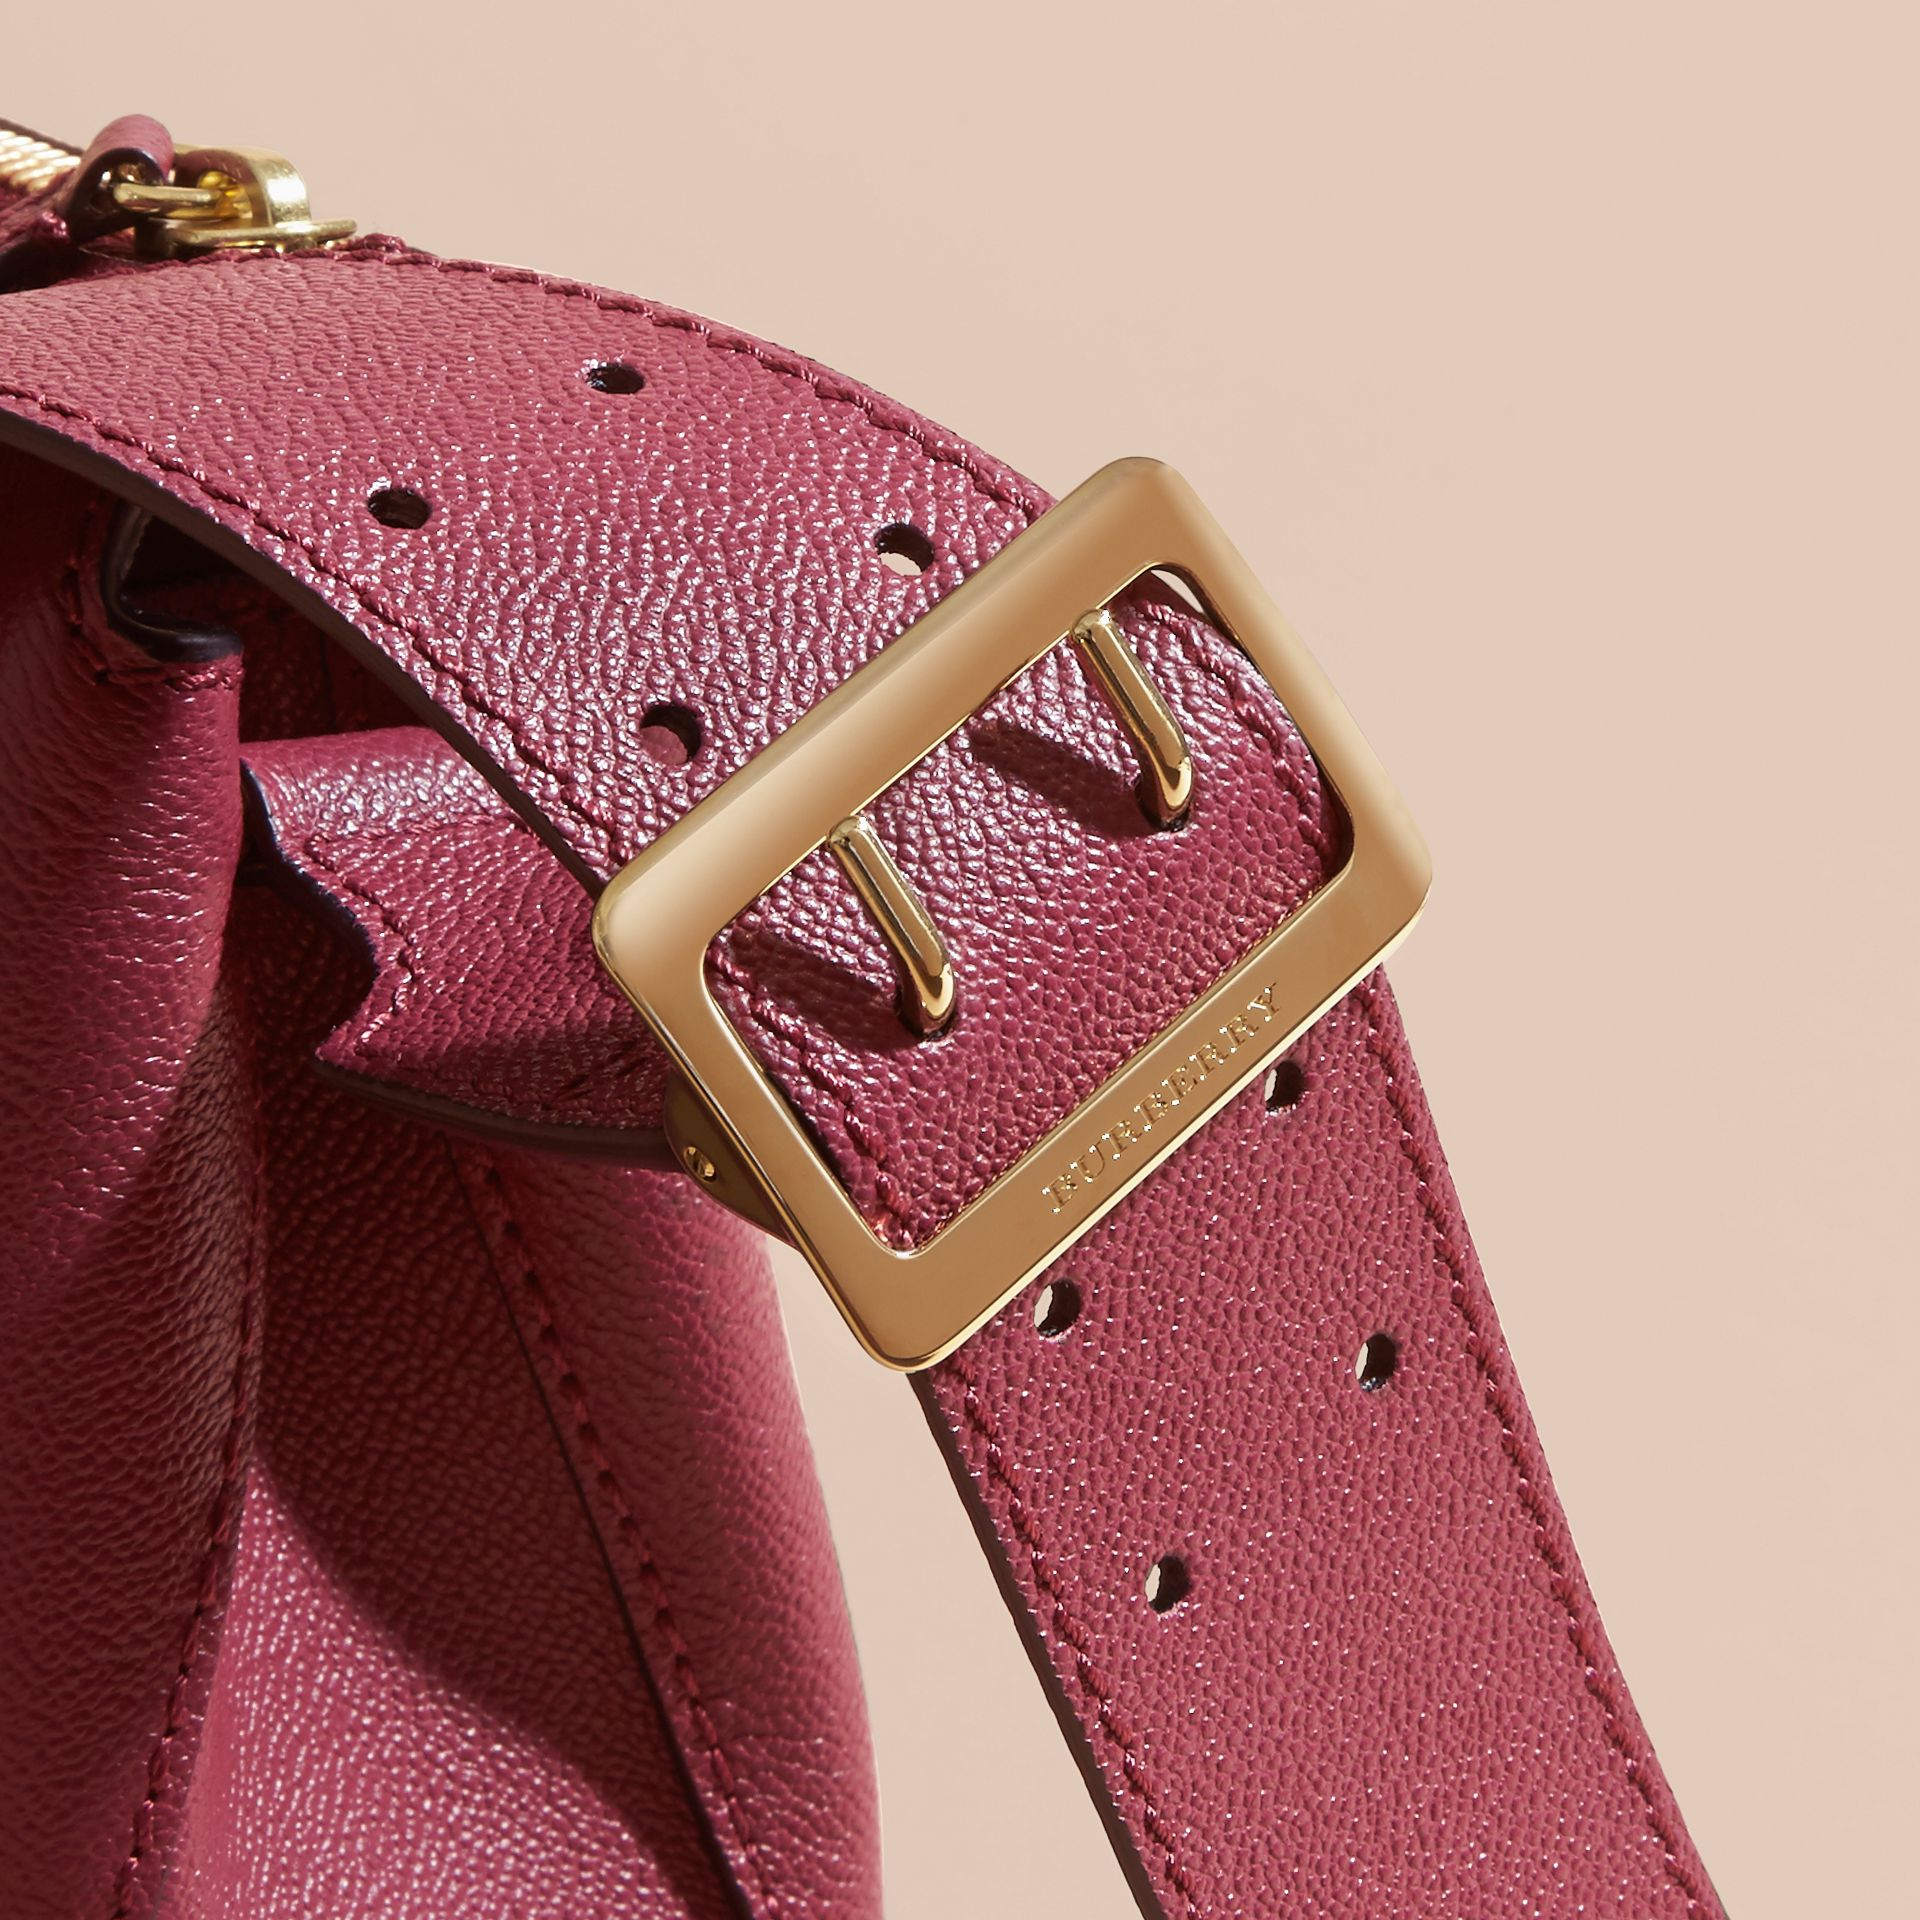 Dark plum Buckle Detail Leather Crossbody Bag Dark Plum - gallery image 2